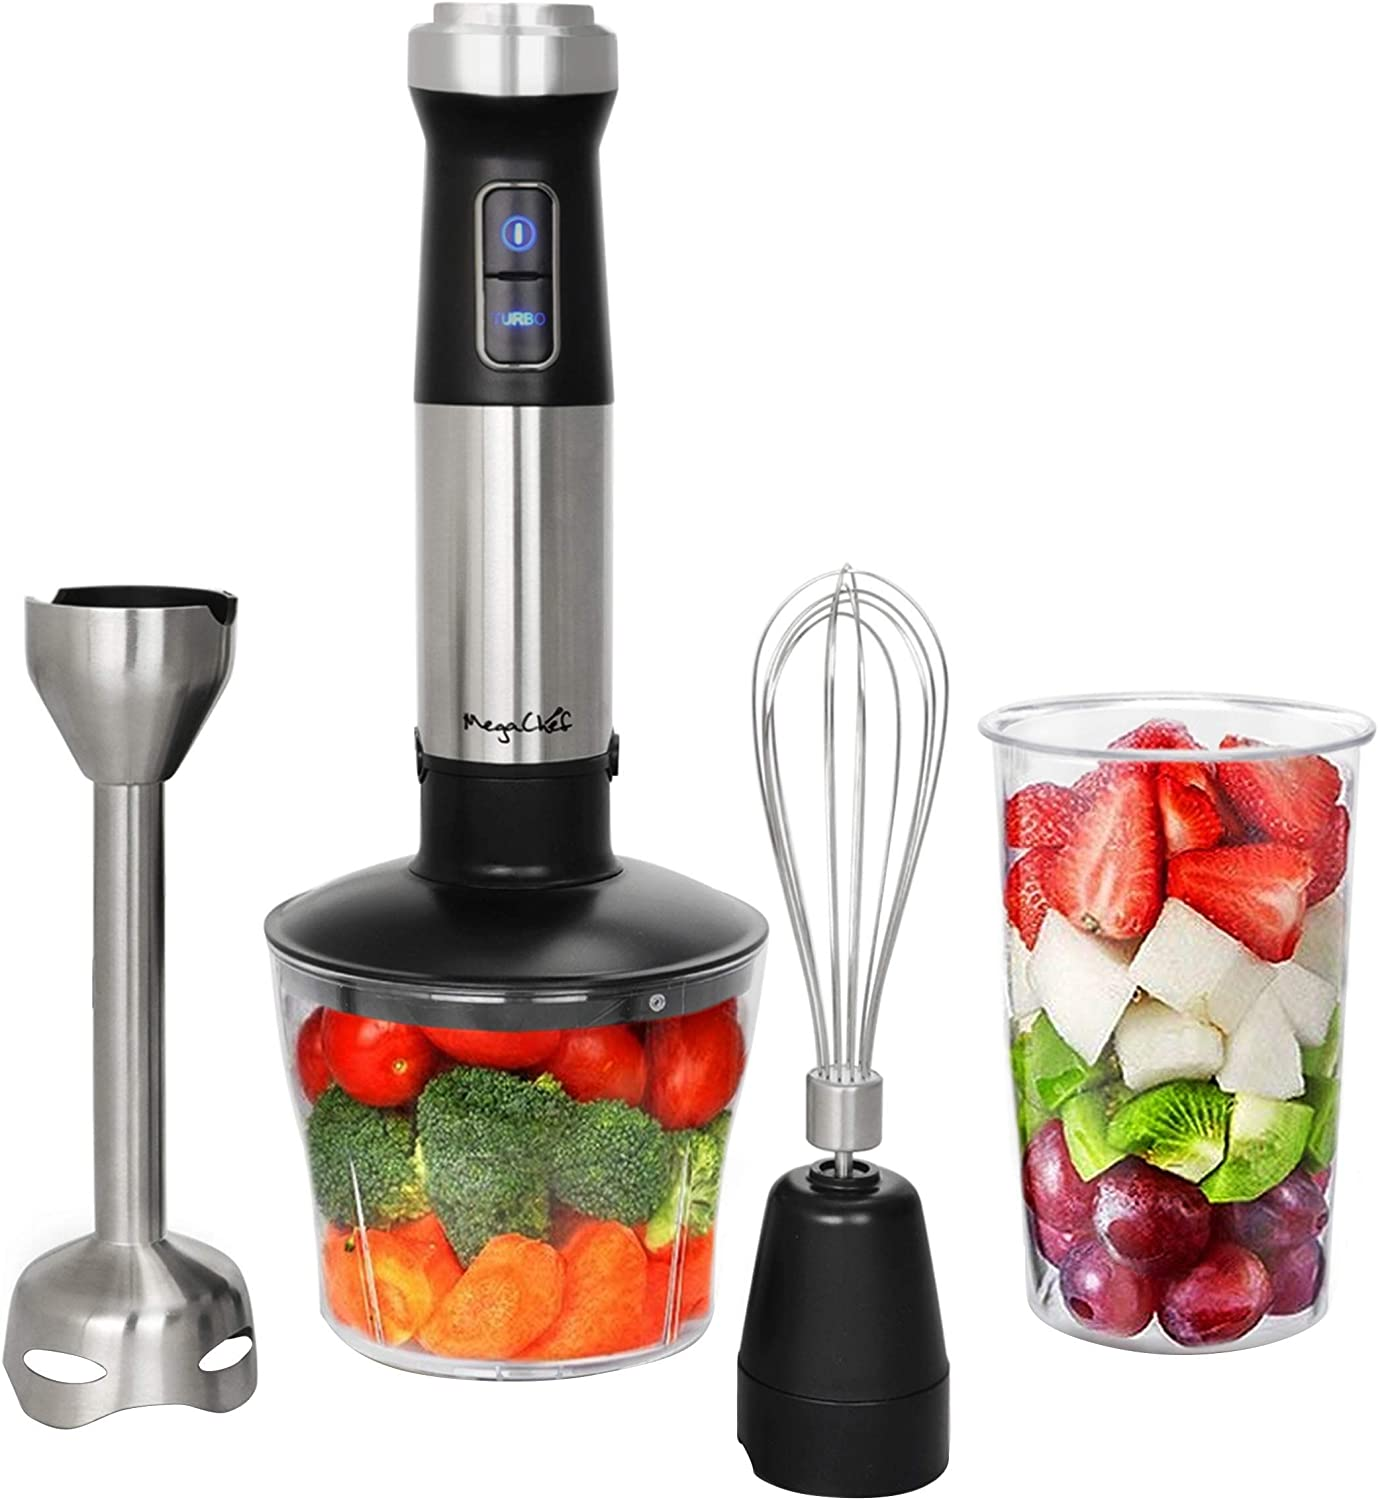 Unknown1 4 in 1 Hand Blender with Multi-use Accessories Black Stainless Steel Dishwasher Safe Parts